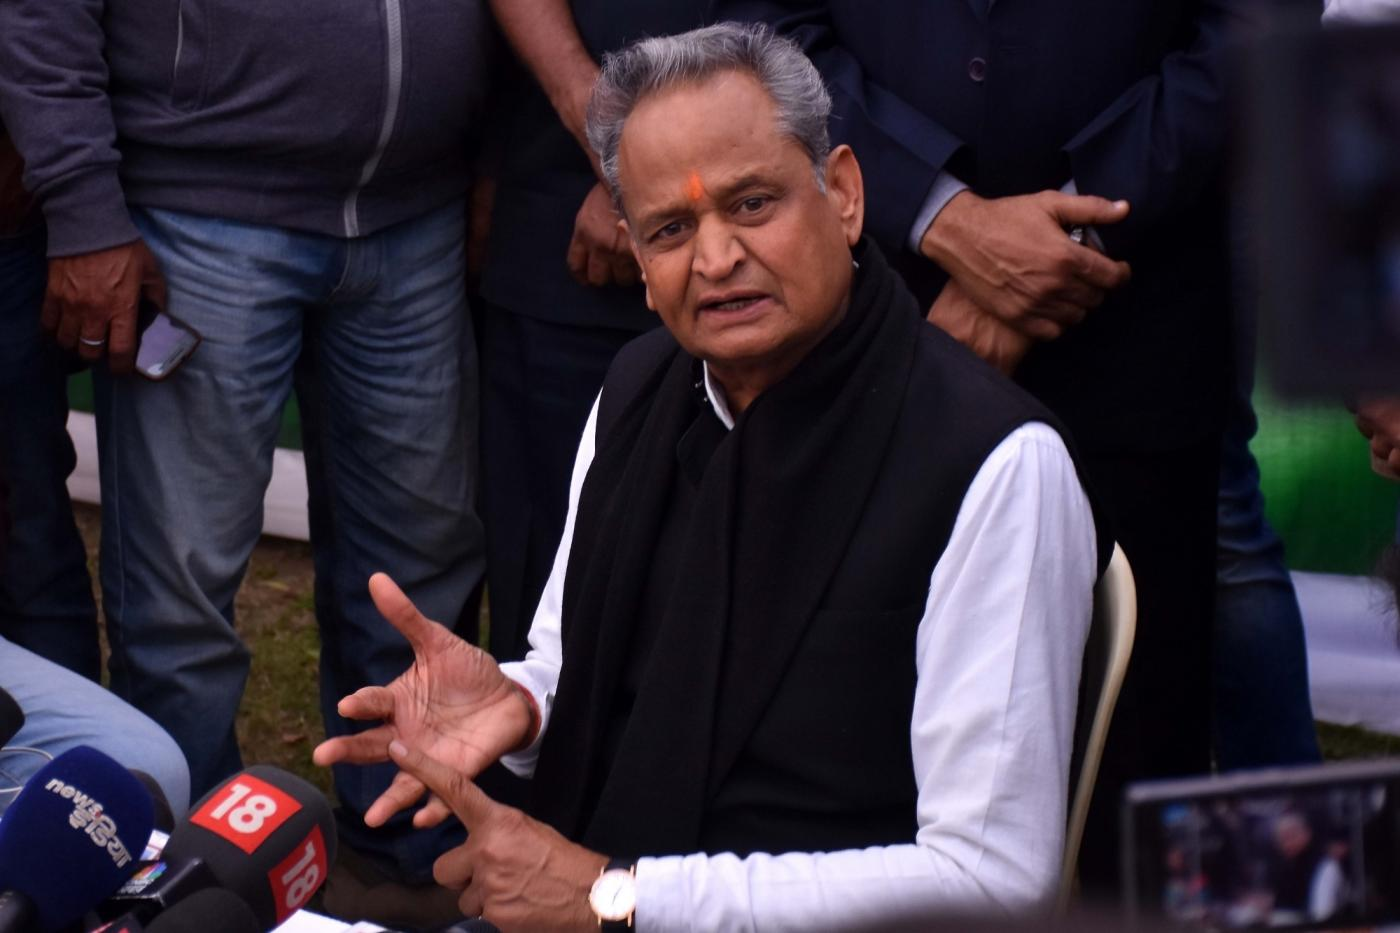 Jaipur: Congress leader Ashok Gehlot addresses a press conference in Jaipur on Dec 11, 2018. (Photo: IANS) by .